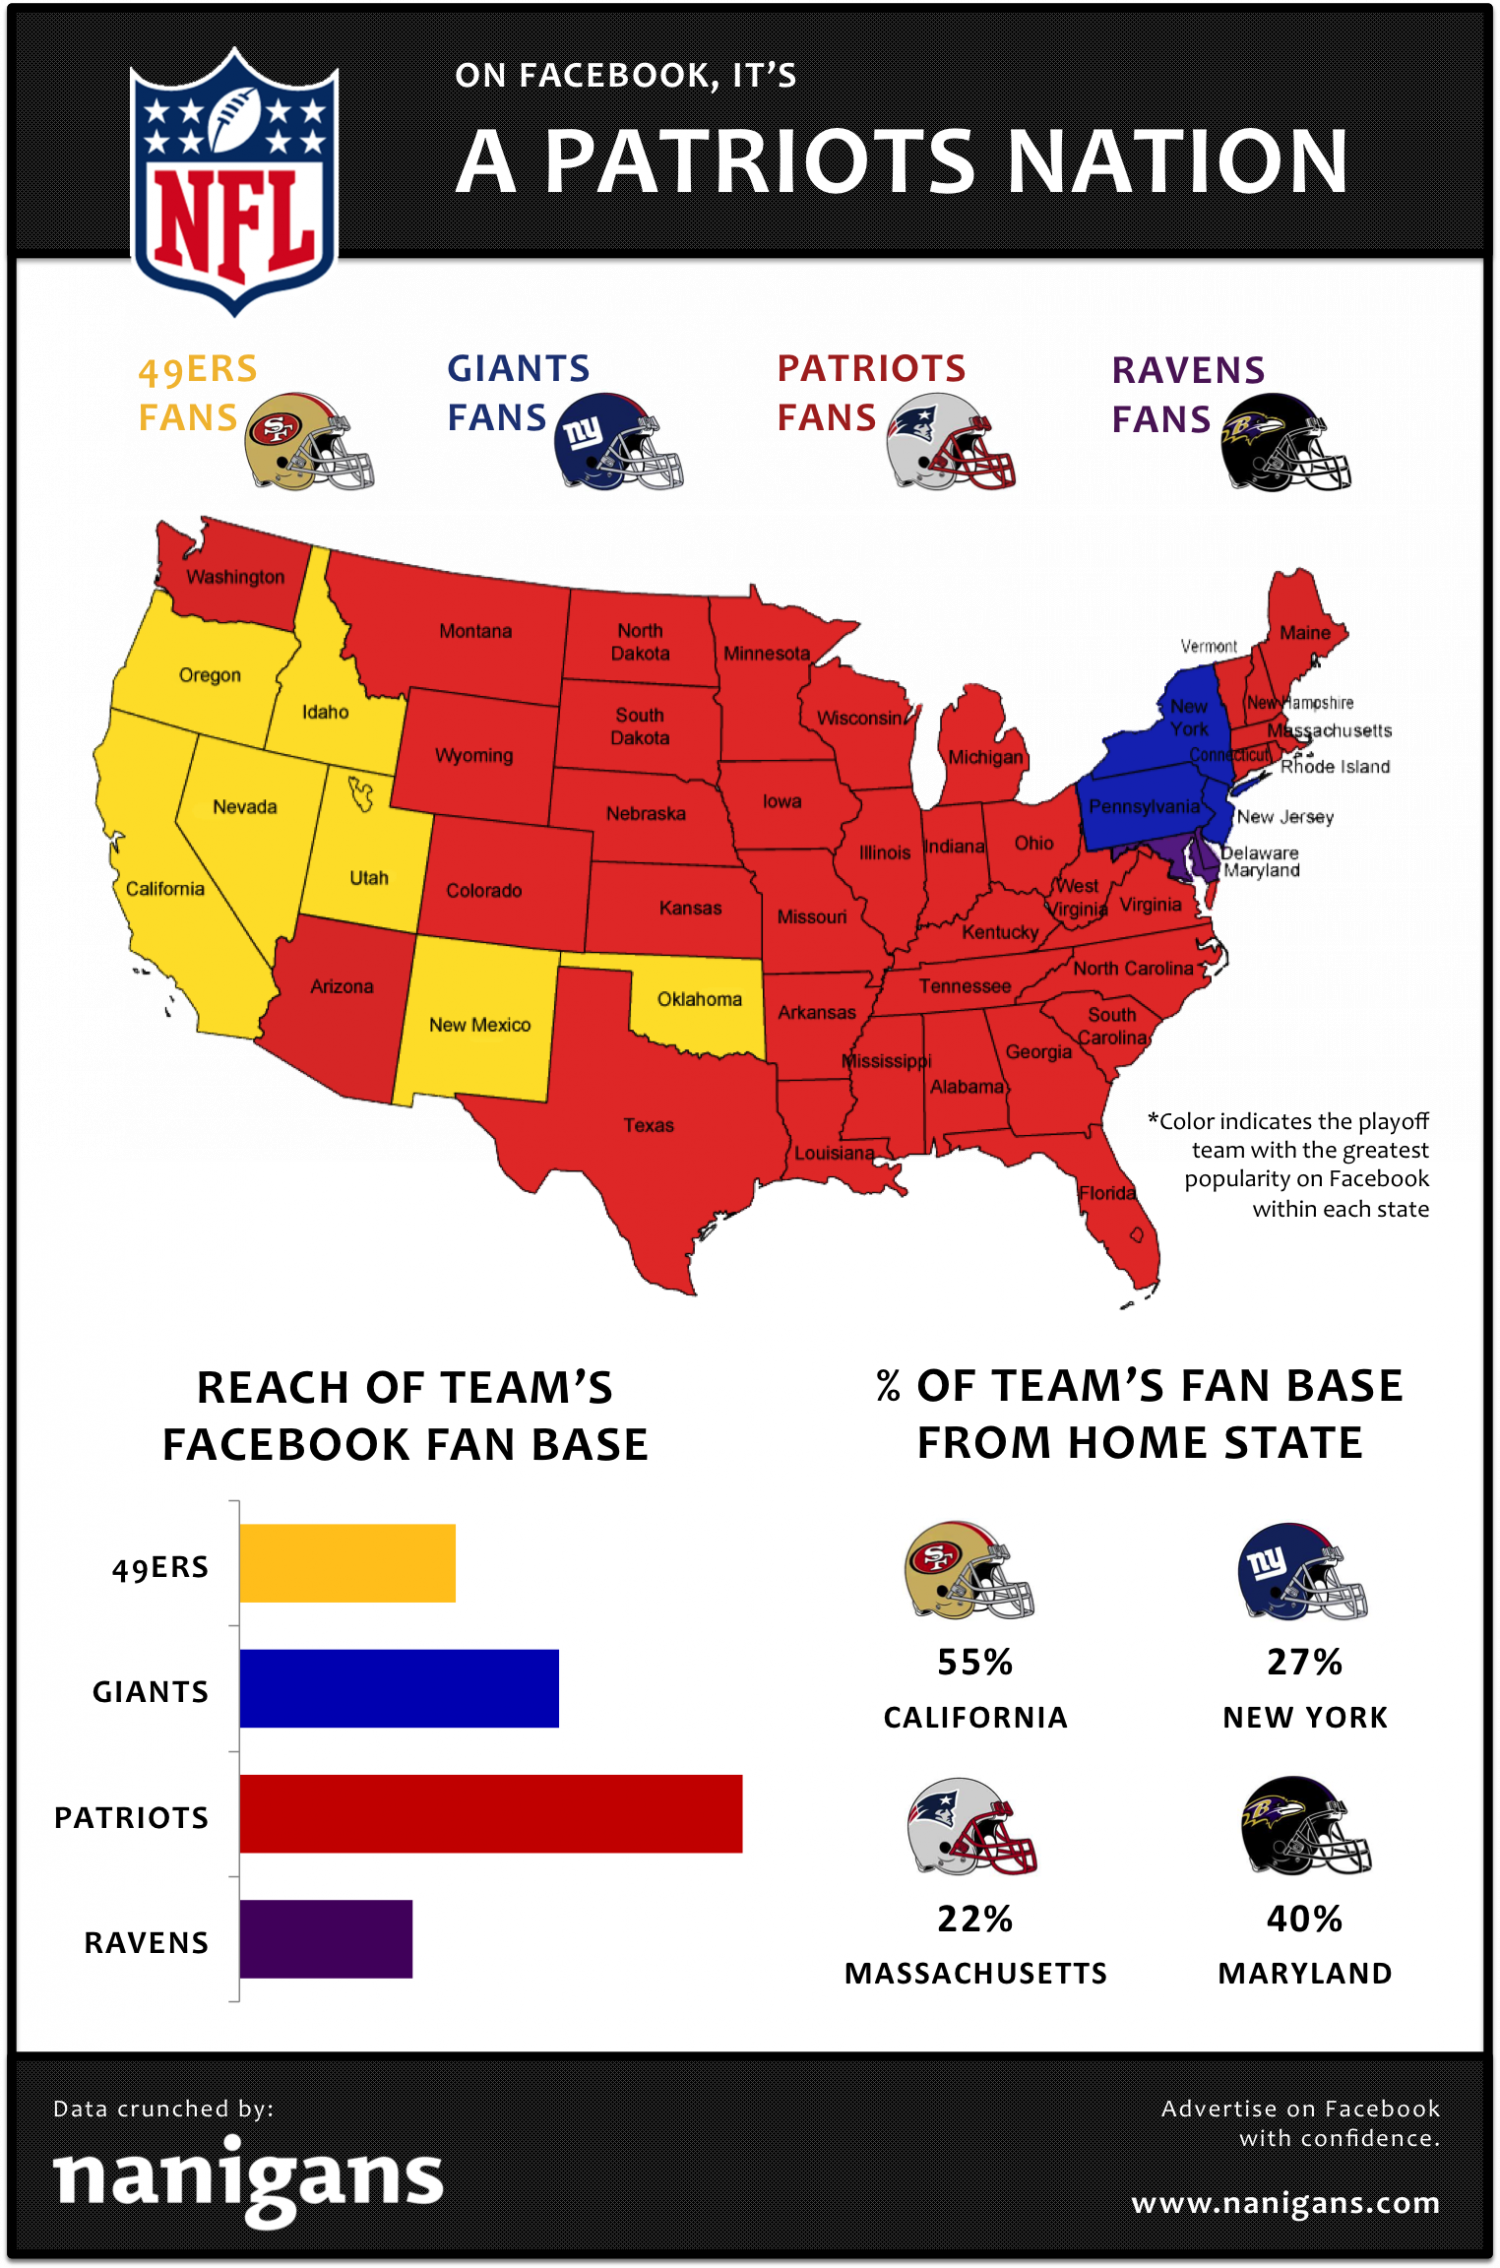 It's a Patriots Nation, According to Facebook Infographic